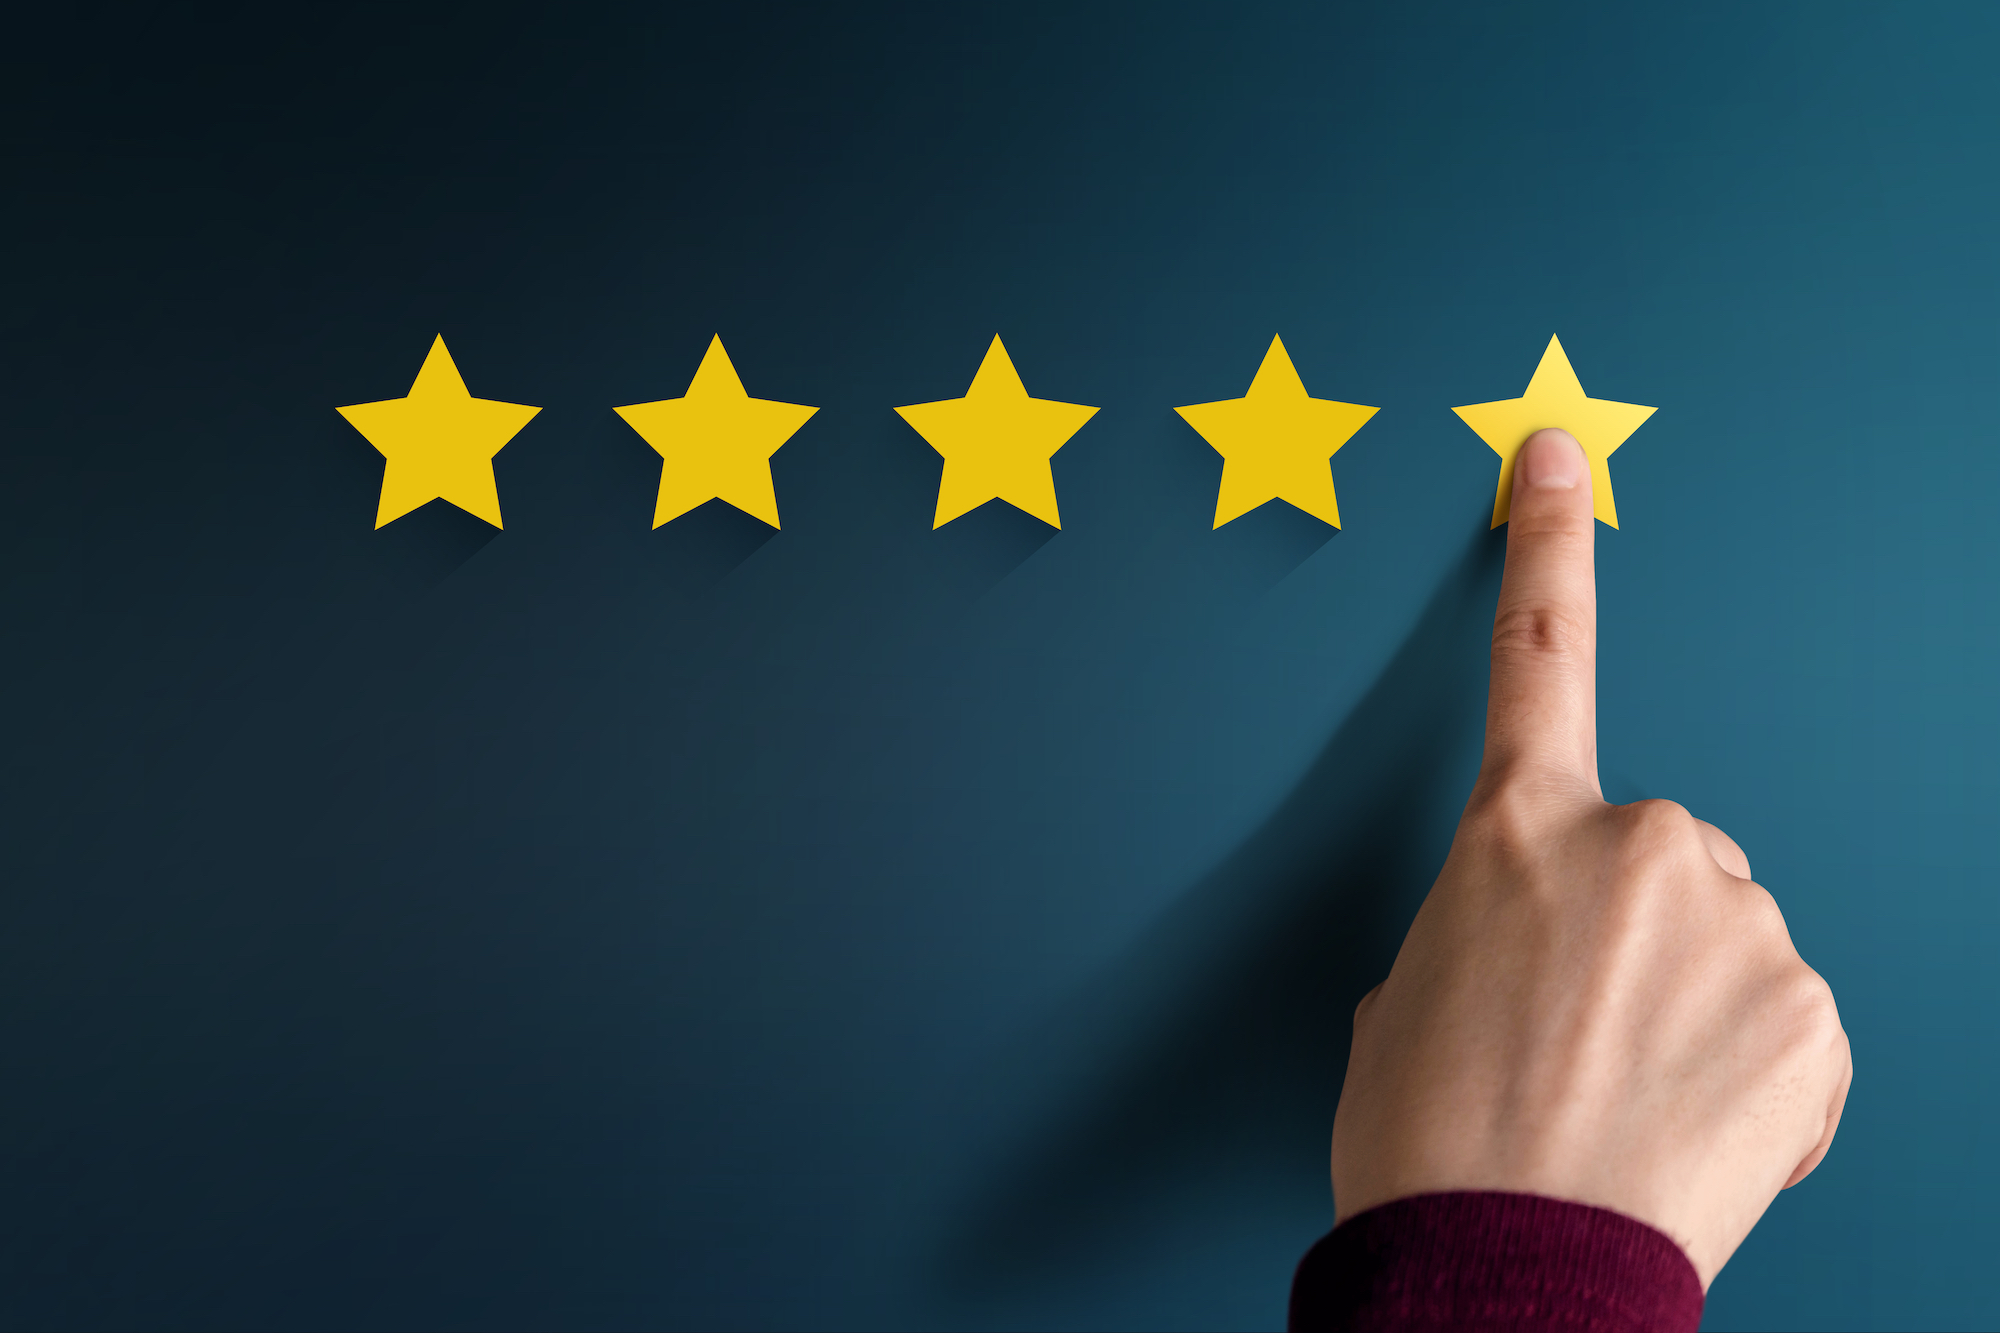 5 Easy Ways to Get More 5 Star Reviews